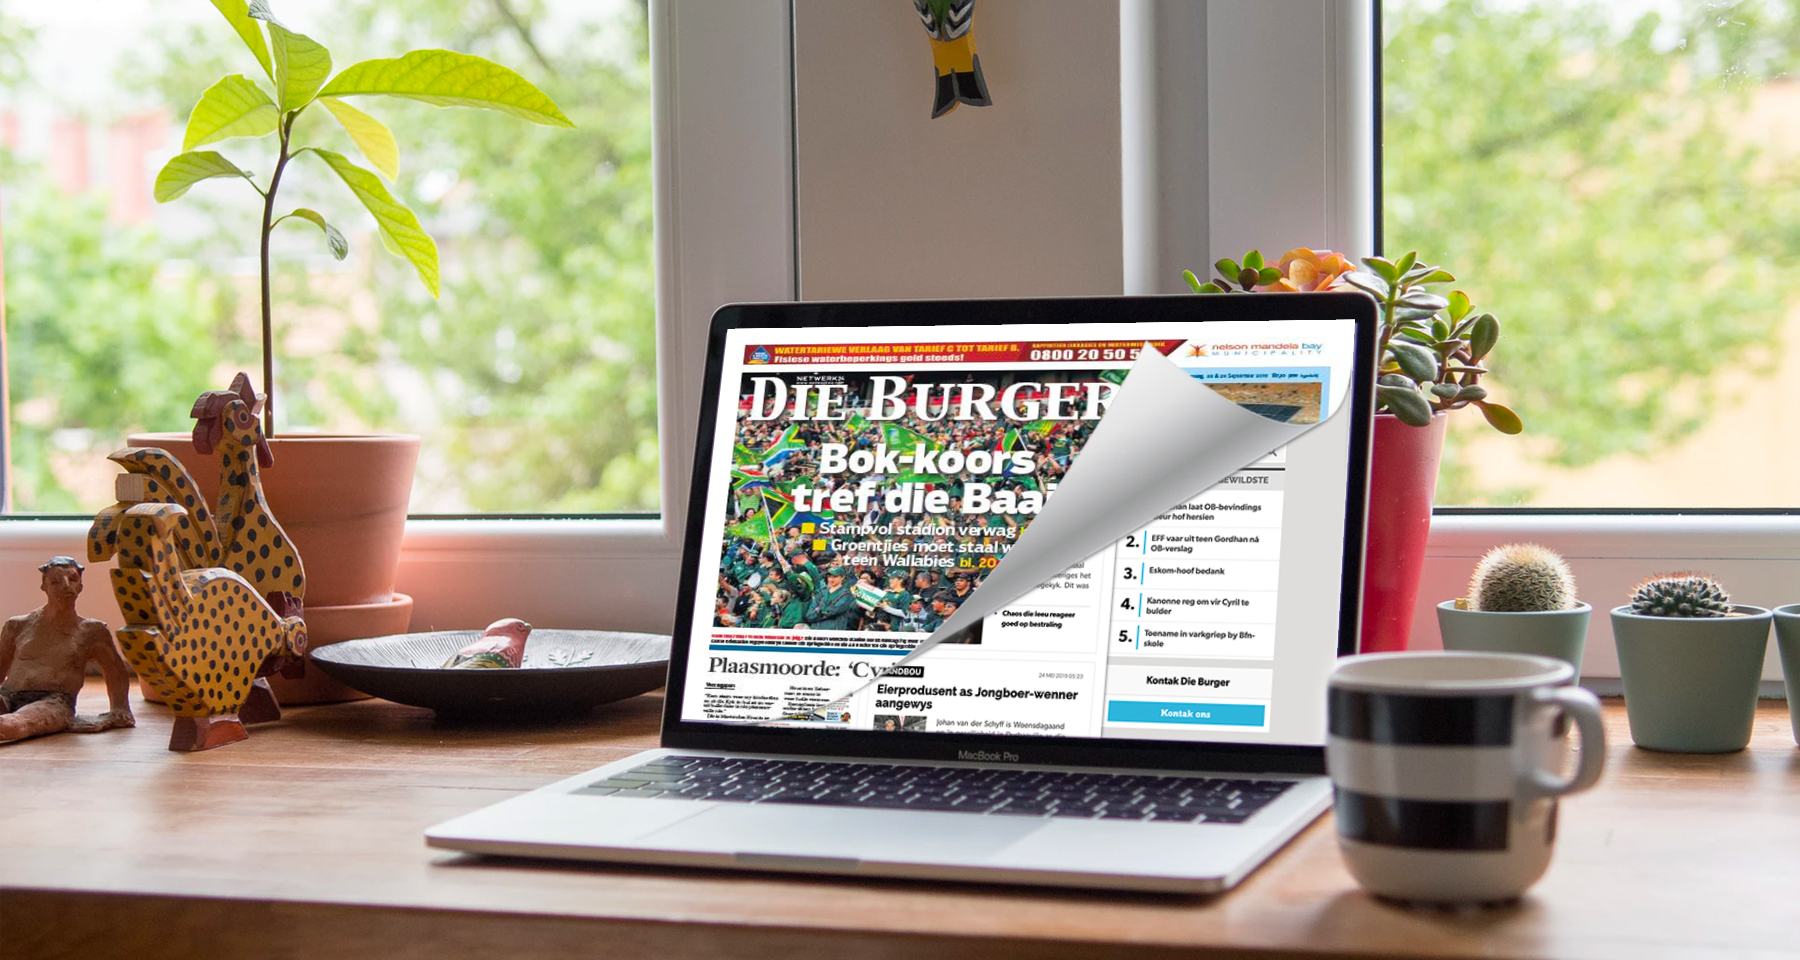 Die Burger converts older readers to digital with a personal touch